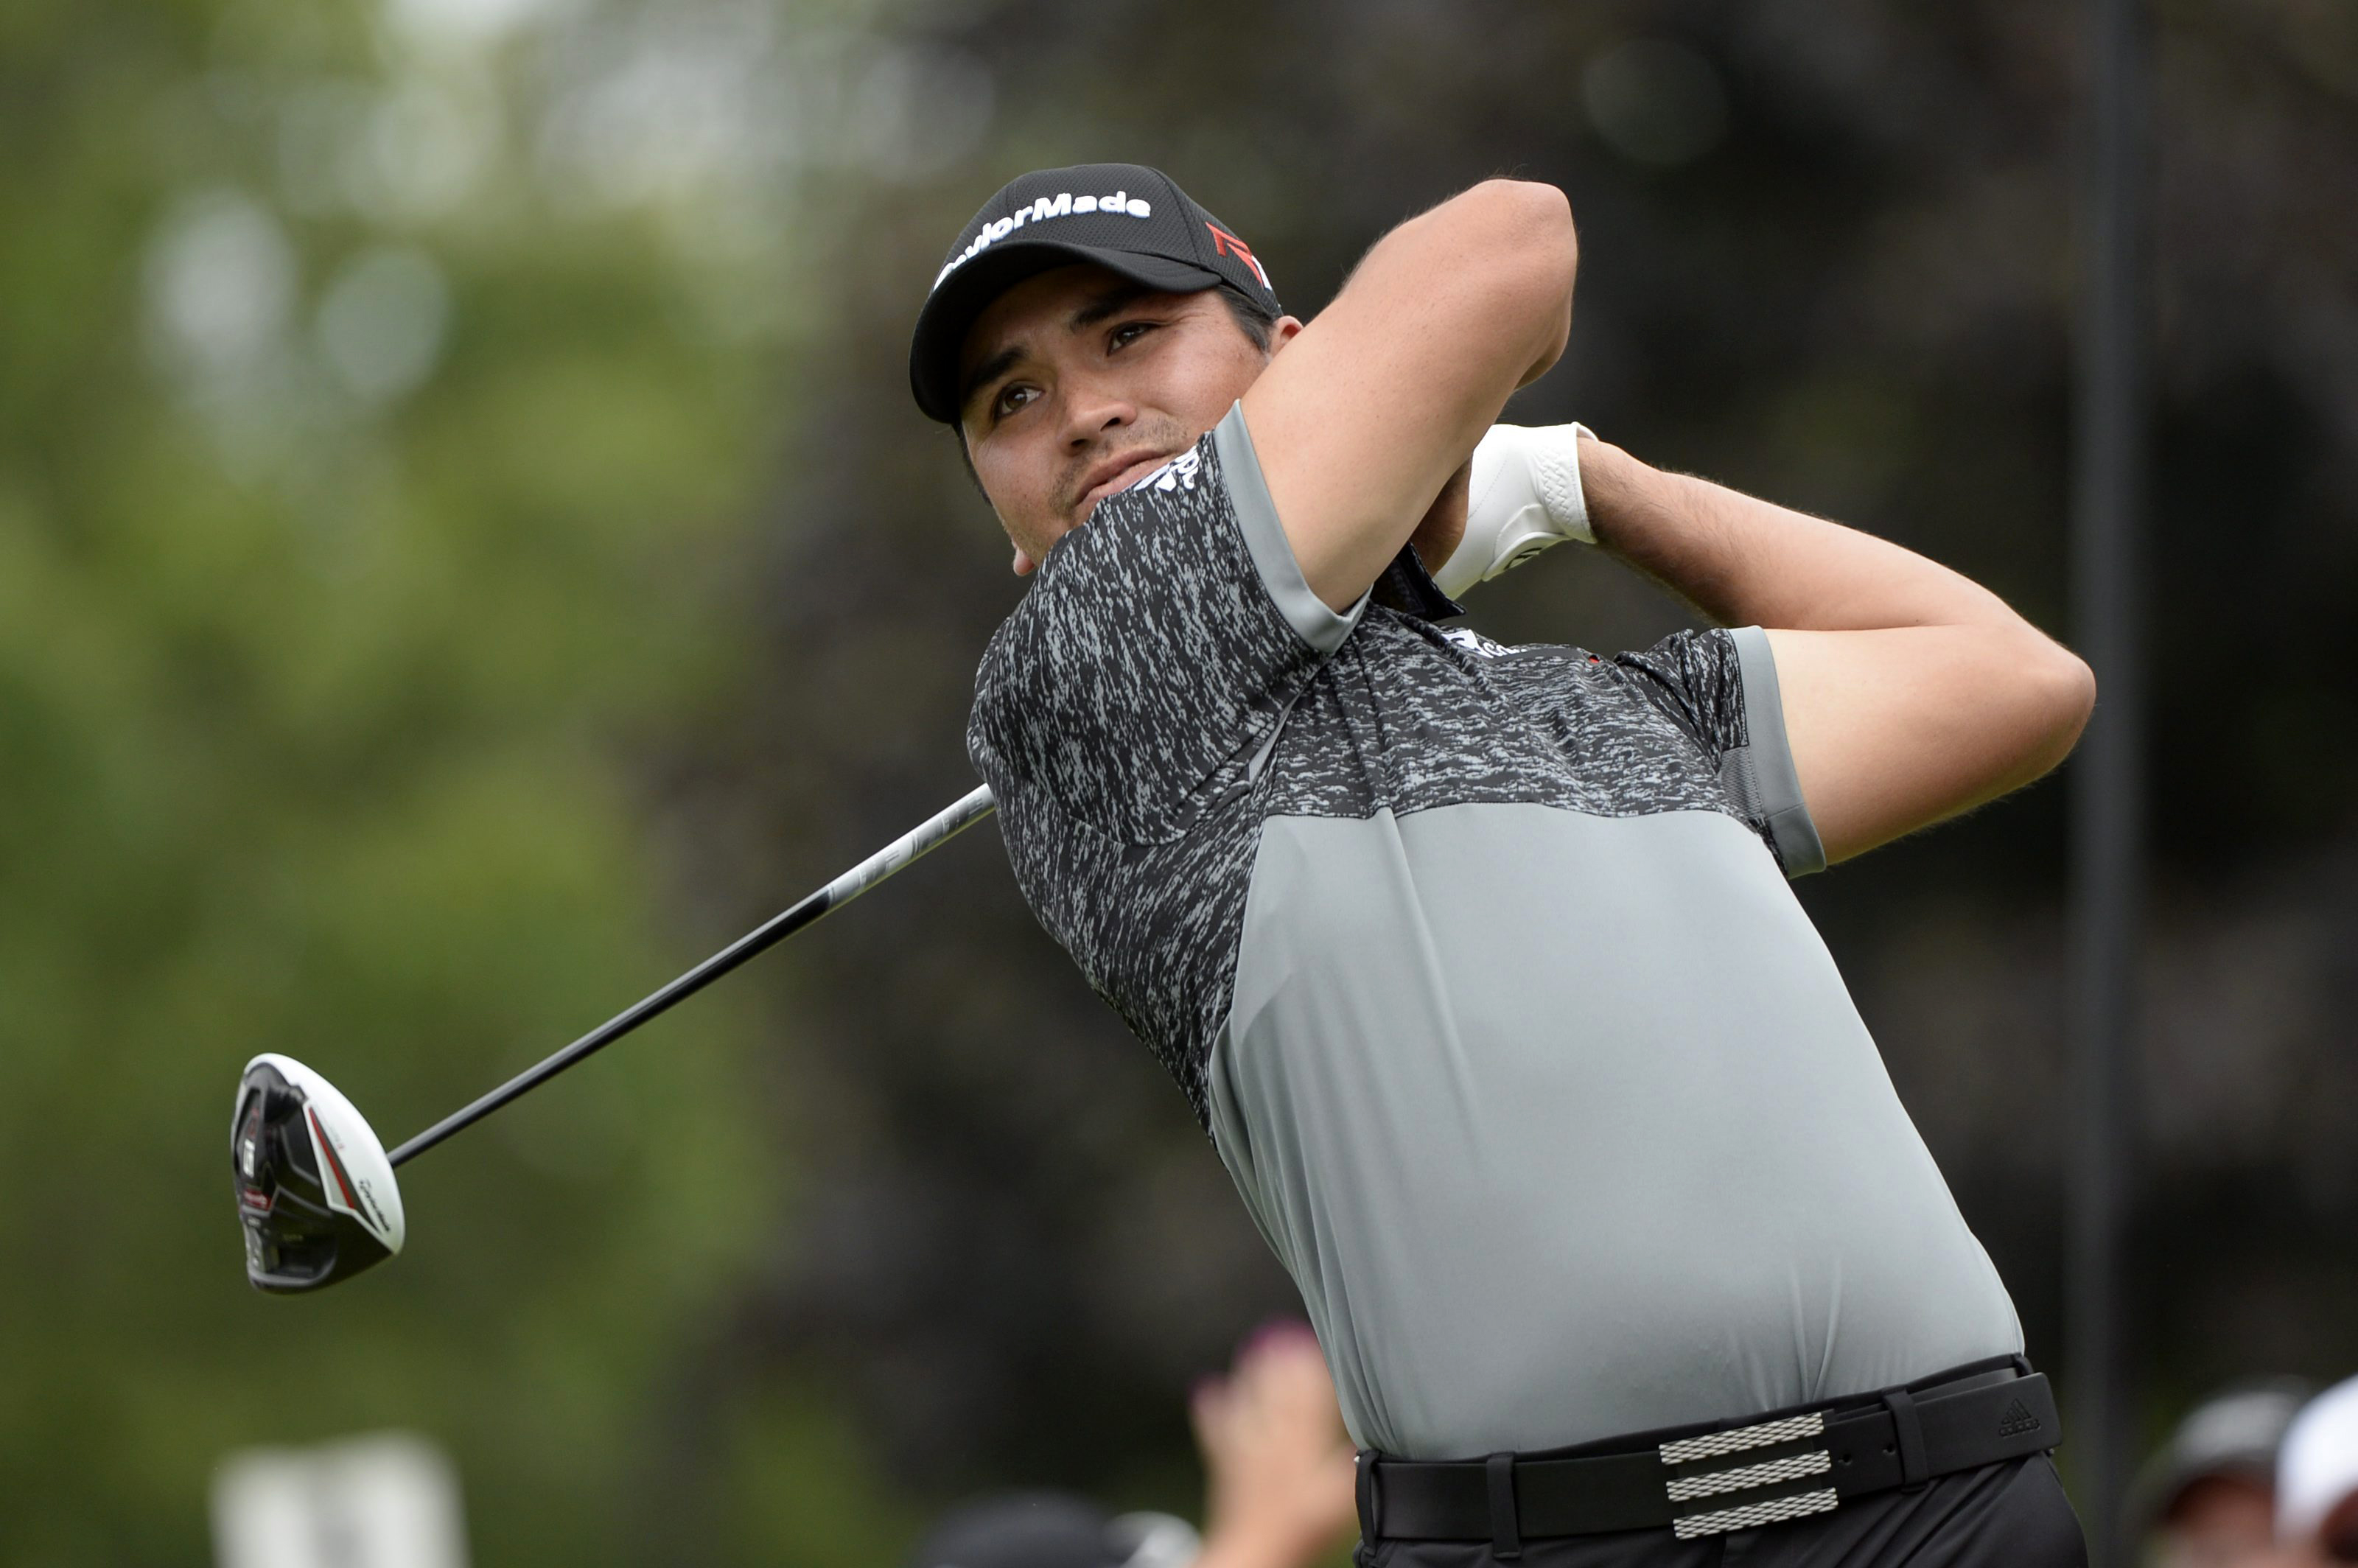 Jason Day of Australia hits off the second tee during the third round of play at the Canadian Open golf tournament in Oakville, Ontario, on Saturday, July 25, 2015. (Paul Chiasson /The Canadian Press via AP) MANDATORY CREDIT